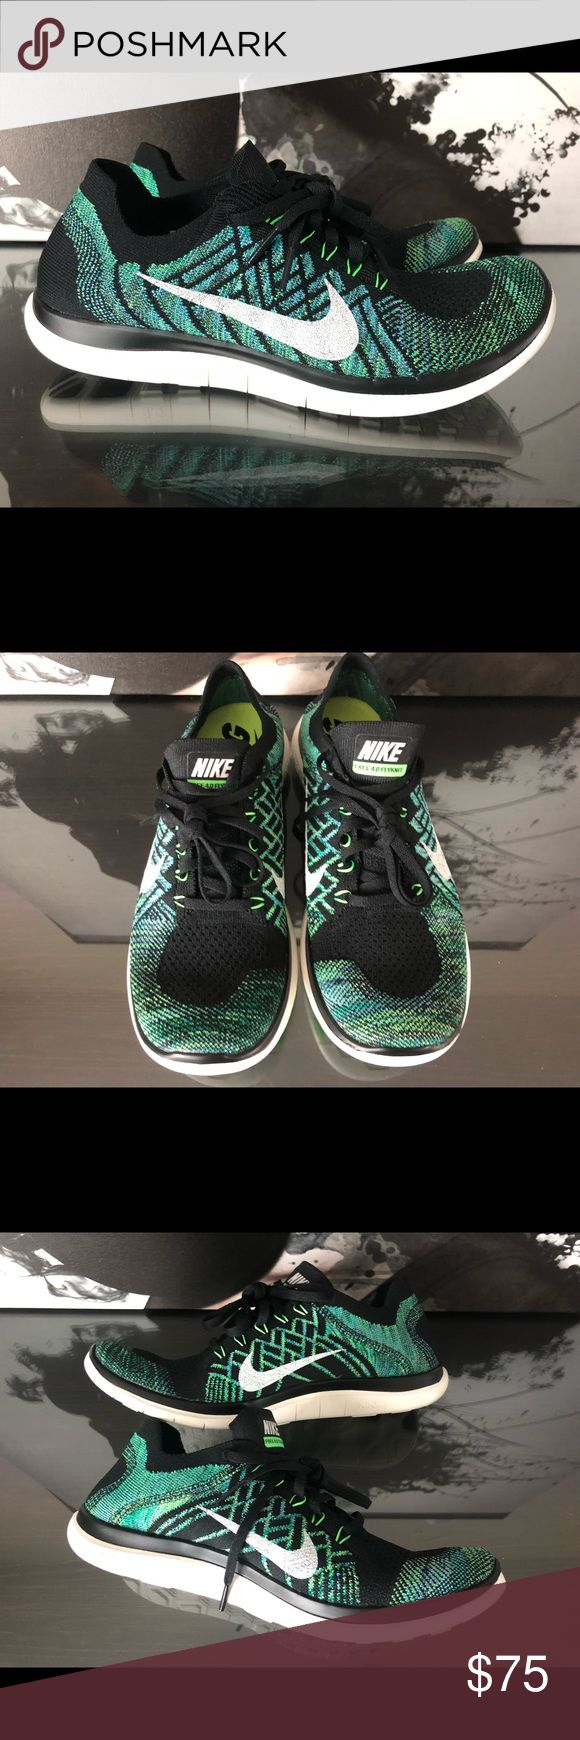 WOMENS Nike Free 4.0 Flyknit   NEW   Voltage Green ☑️ Shoes are brand new, with box! ☑️ Box is missing the lid/ box top.  ☑️ Will ship out within 24 hours.  ❌ No transactions outside of Posh   All my inventory in posh comes from my eBay store page, (cross listed) so prices are competitive with that platform as well.   Stores.ebay.com/premiumlacesthreads Nike Shoes Athletic Shoes